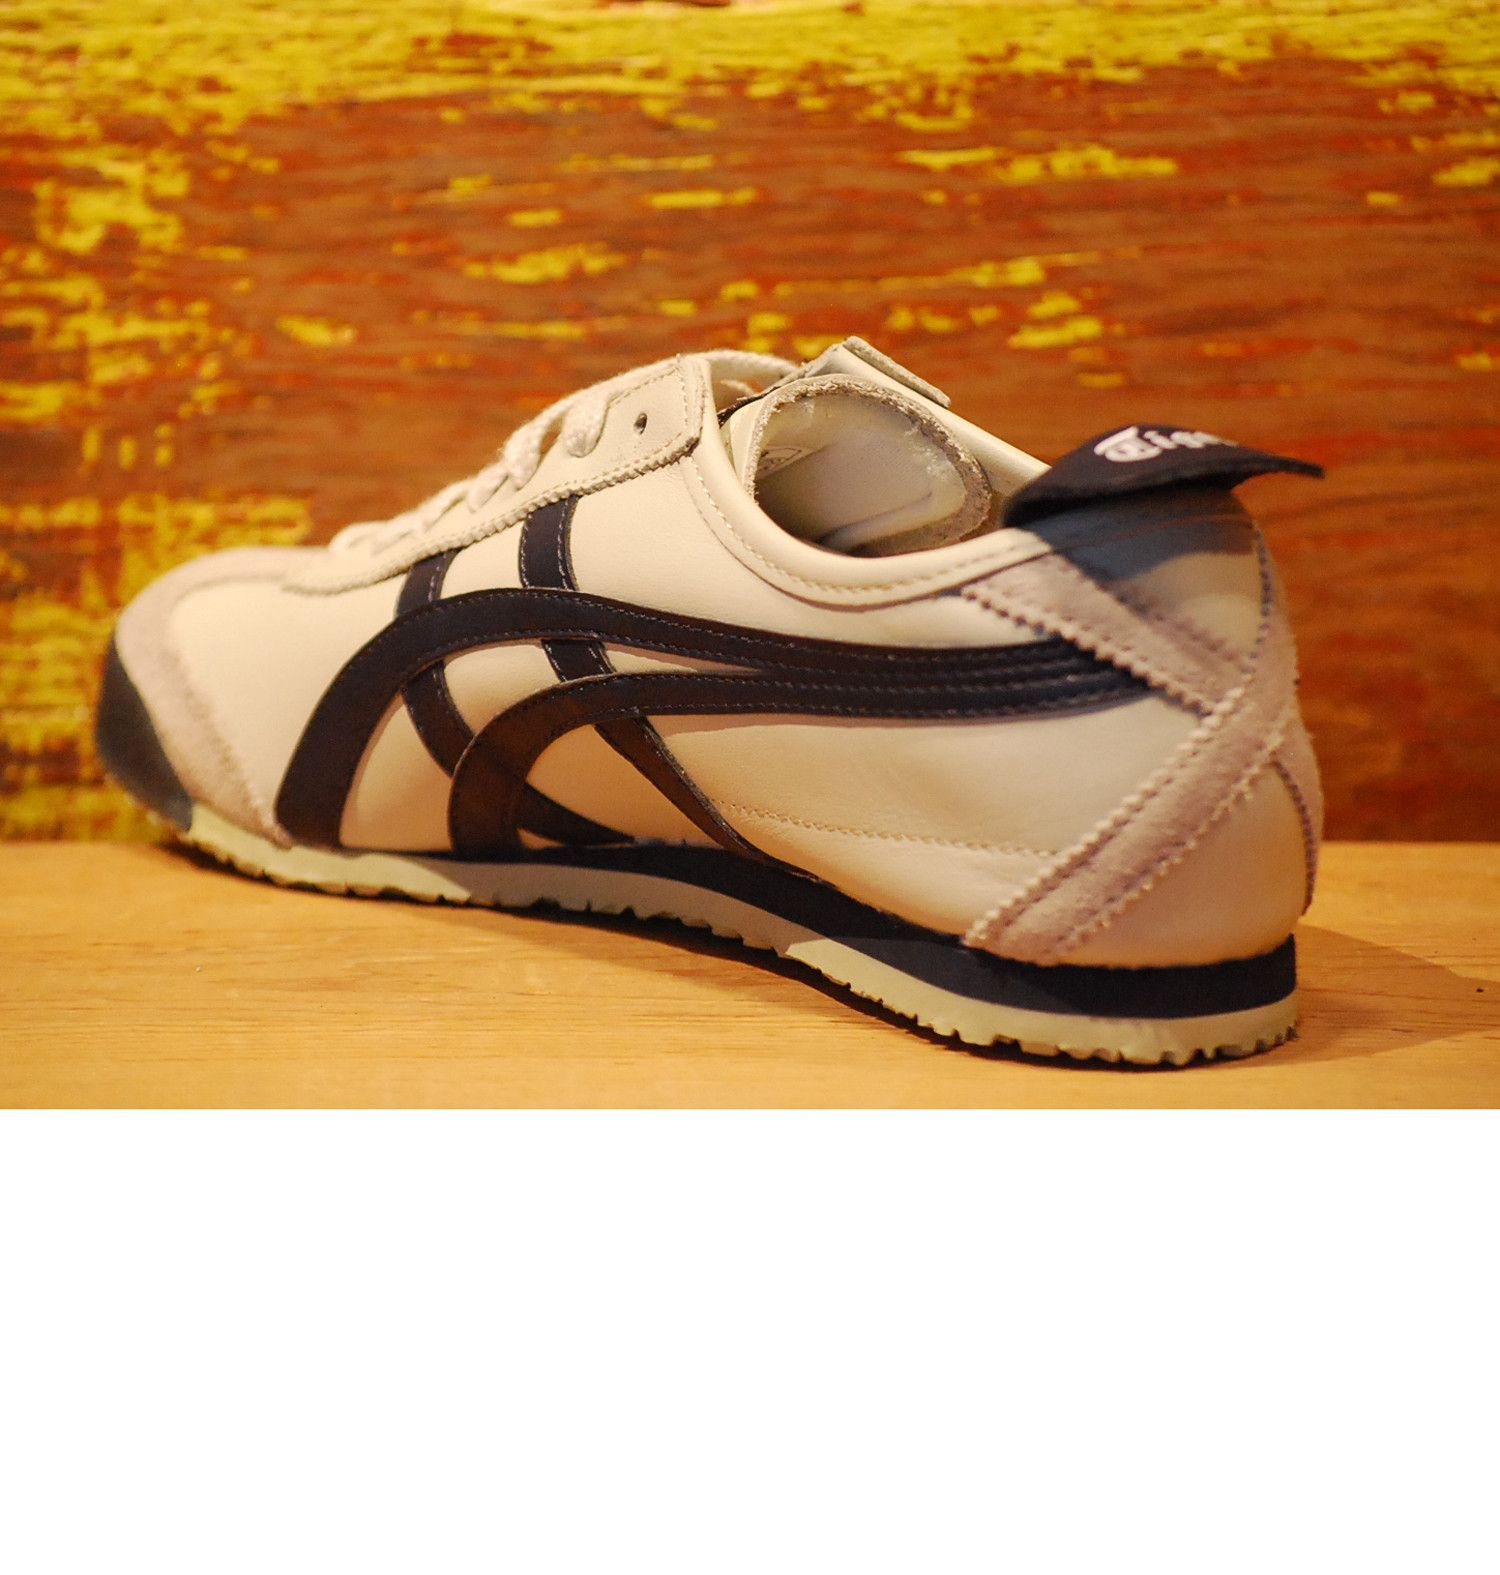 promo code 532f9 5fa35 Onitsuka Tiger Mexico 66 Sneaker in Birch Latte and Indian ...